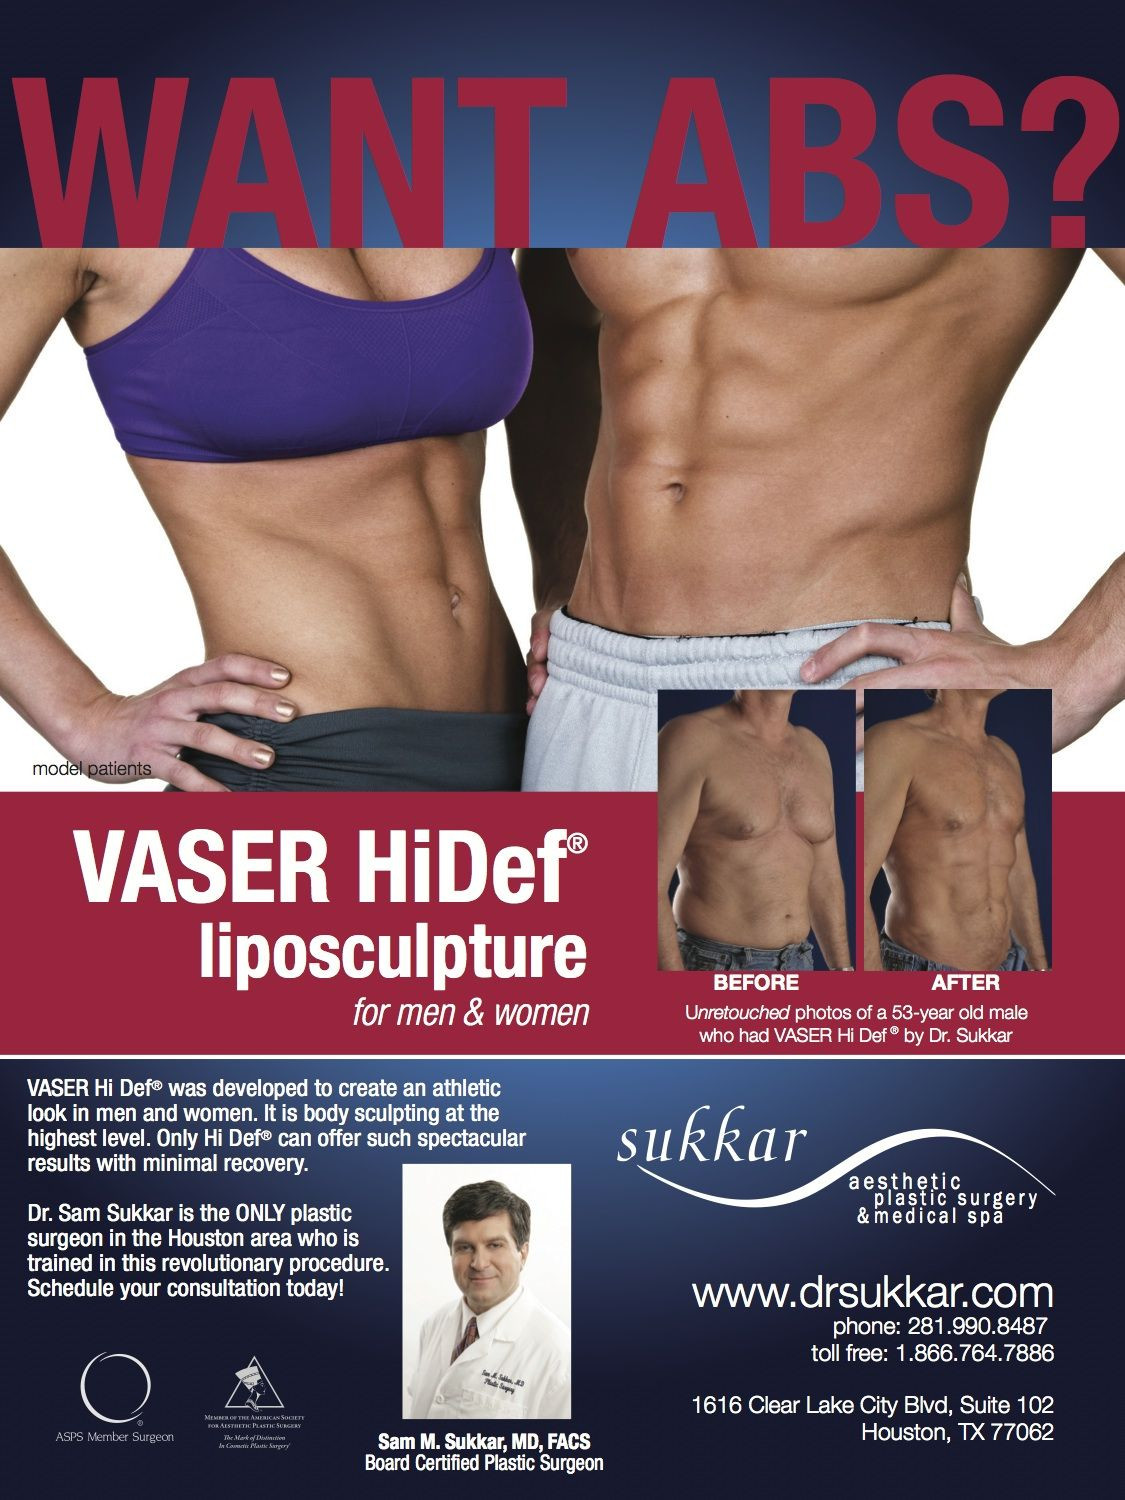 What is Vaser Liposuction Procedure Of Abs Vaser Hidef Pinterest Board Certified Plastic Surgeons Pertaining to Abs Vaser Hidef Pinterest Board Certified Plastic Surgeons Surgery and Tummy Tucks